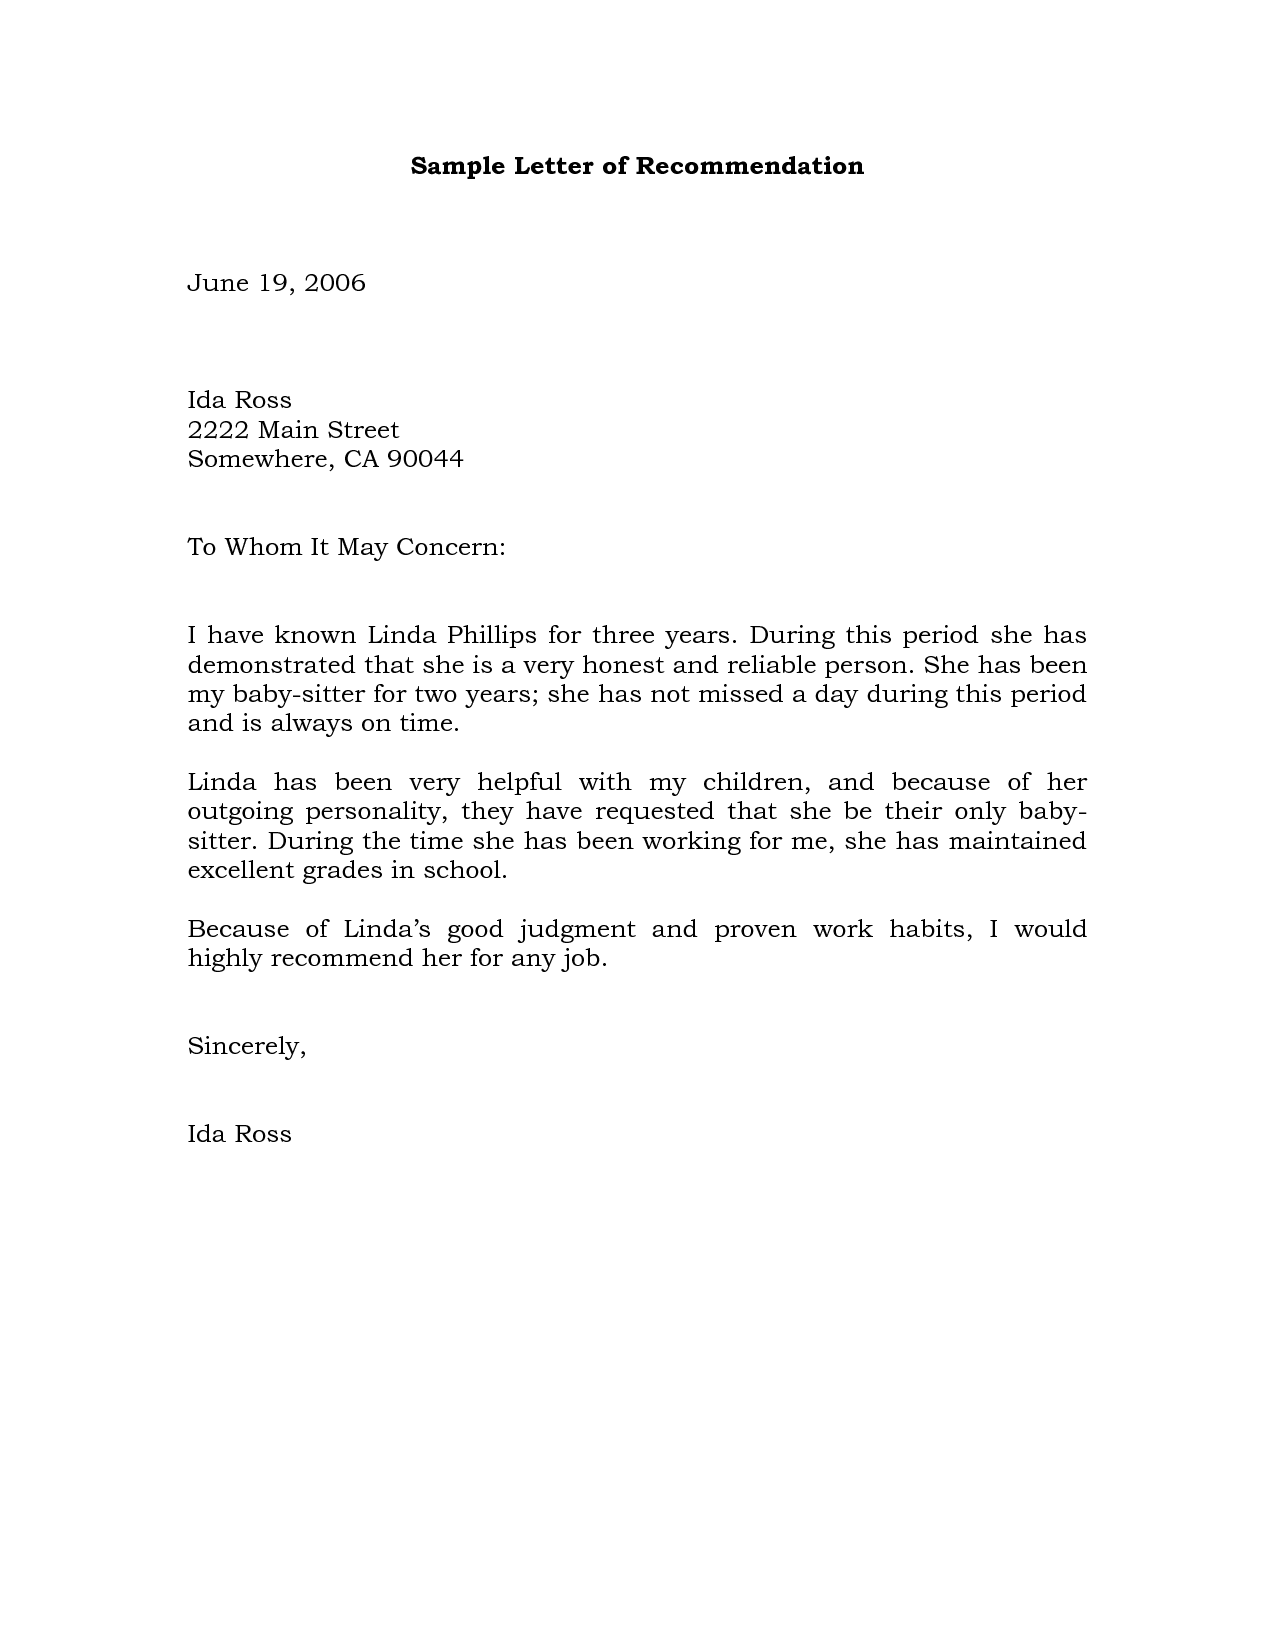 Sample Recommendation Letter Example | Projects to Try | Pinterest